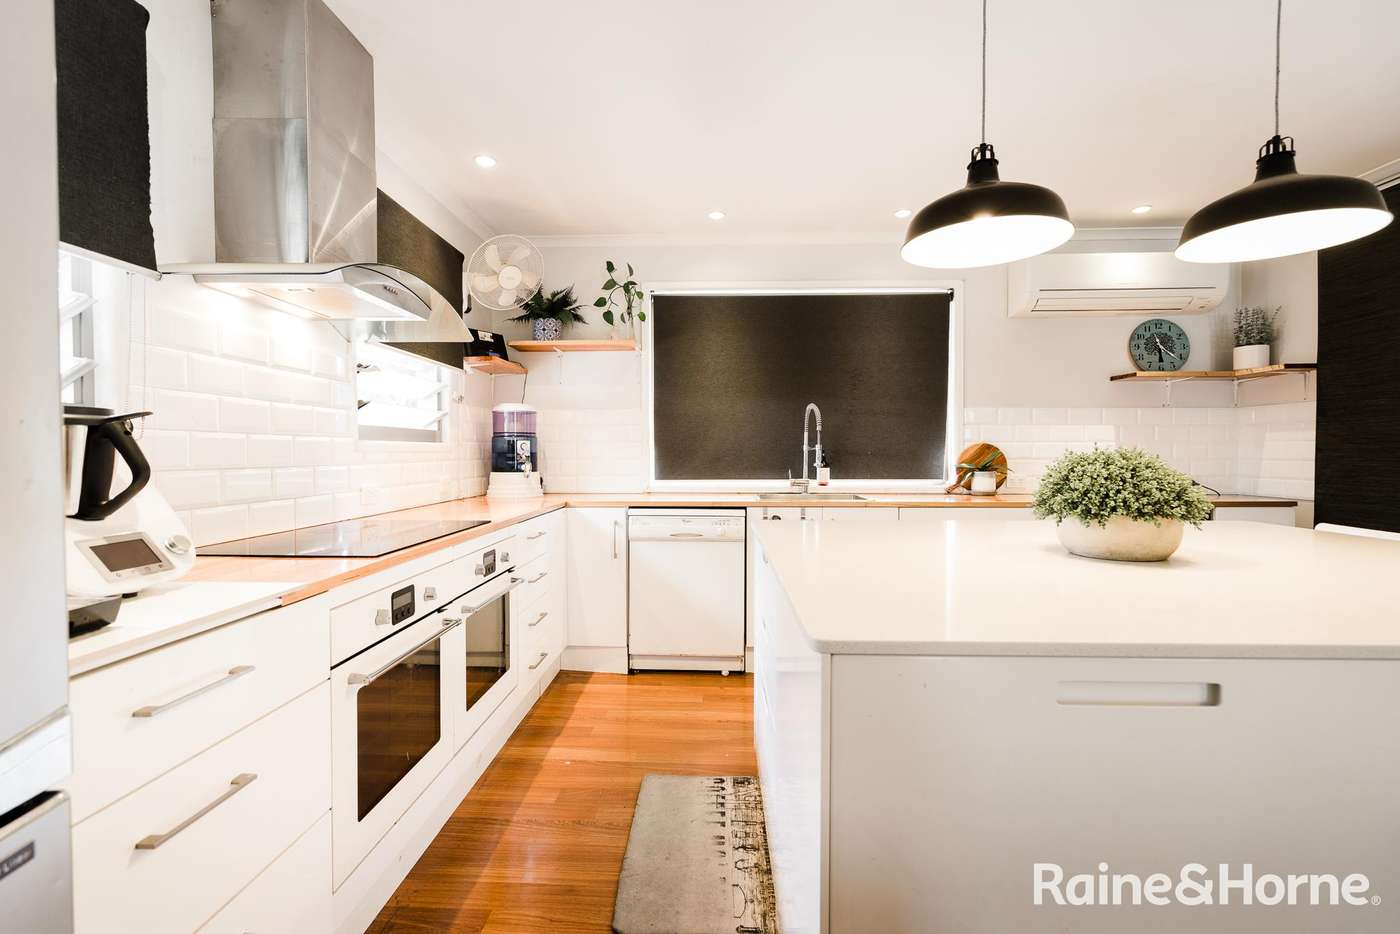 Main view of Homely house listing, 93 Henderson Road, Burpengary QLD 4505